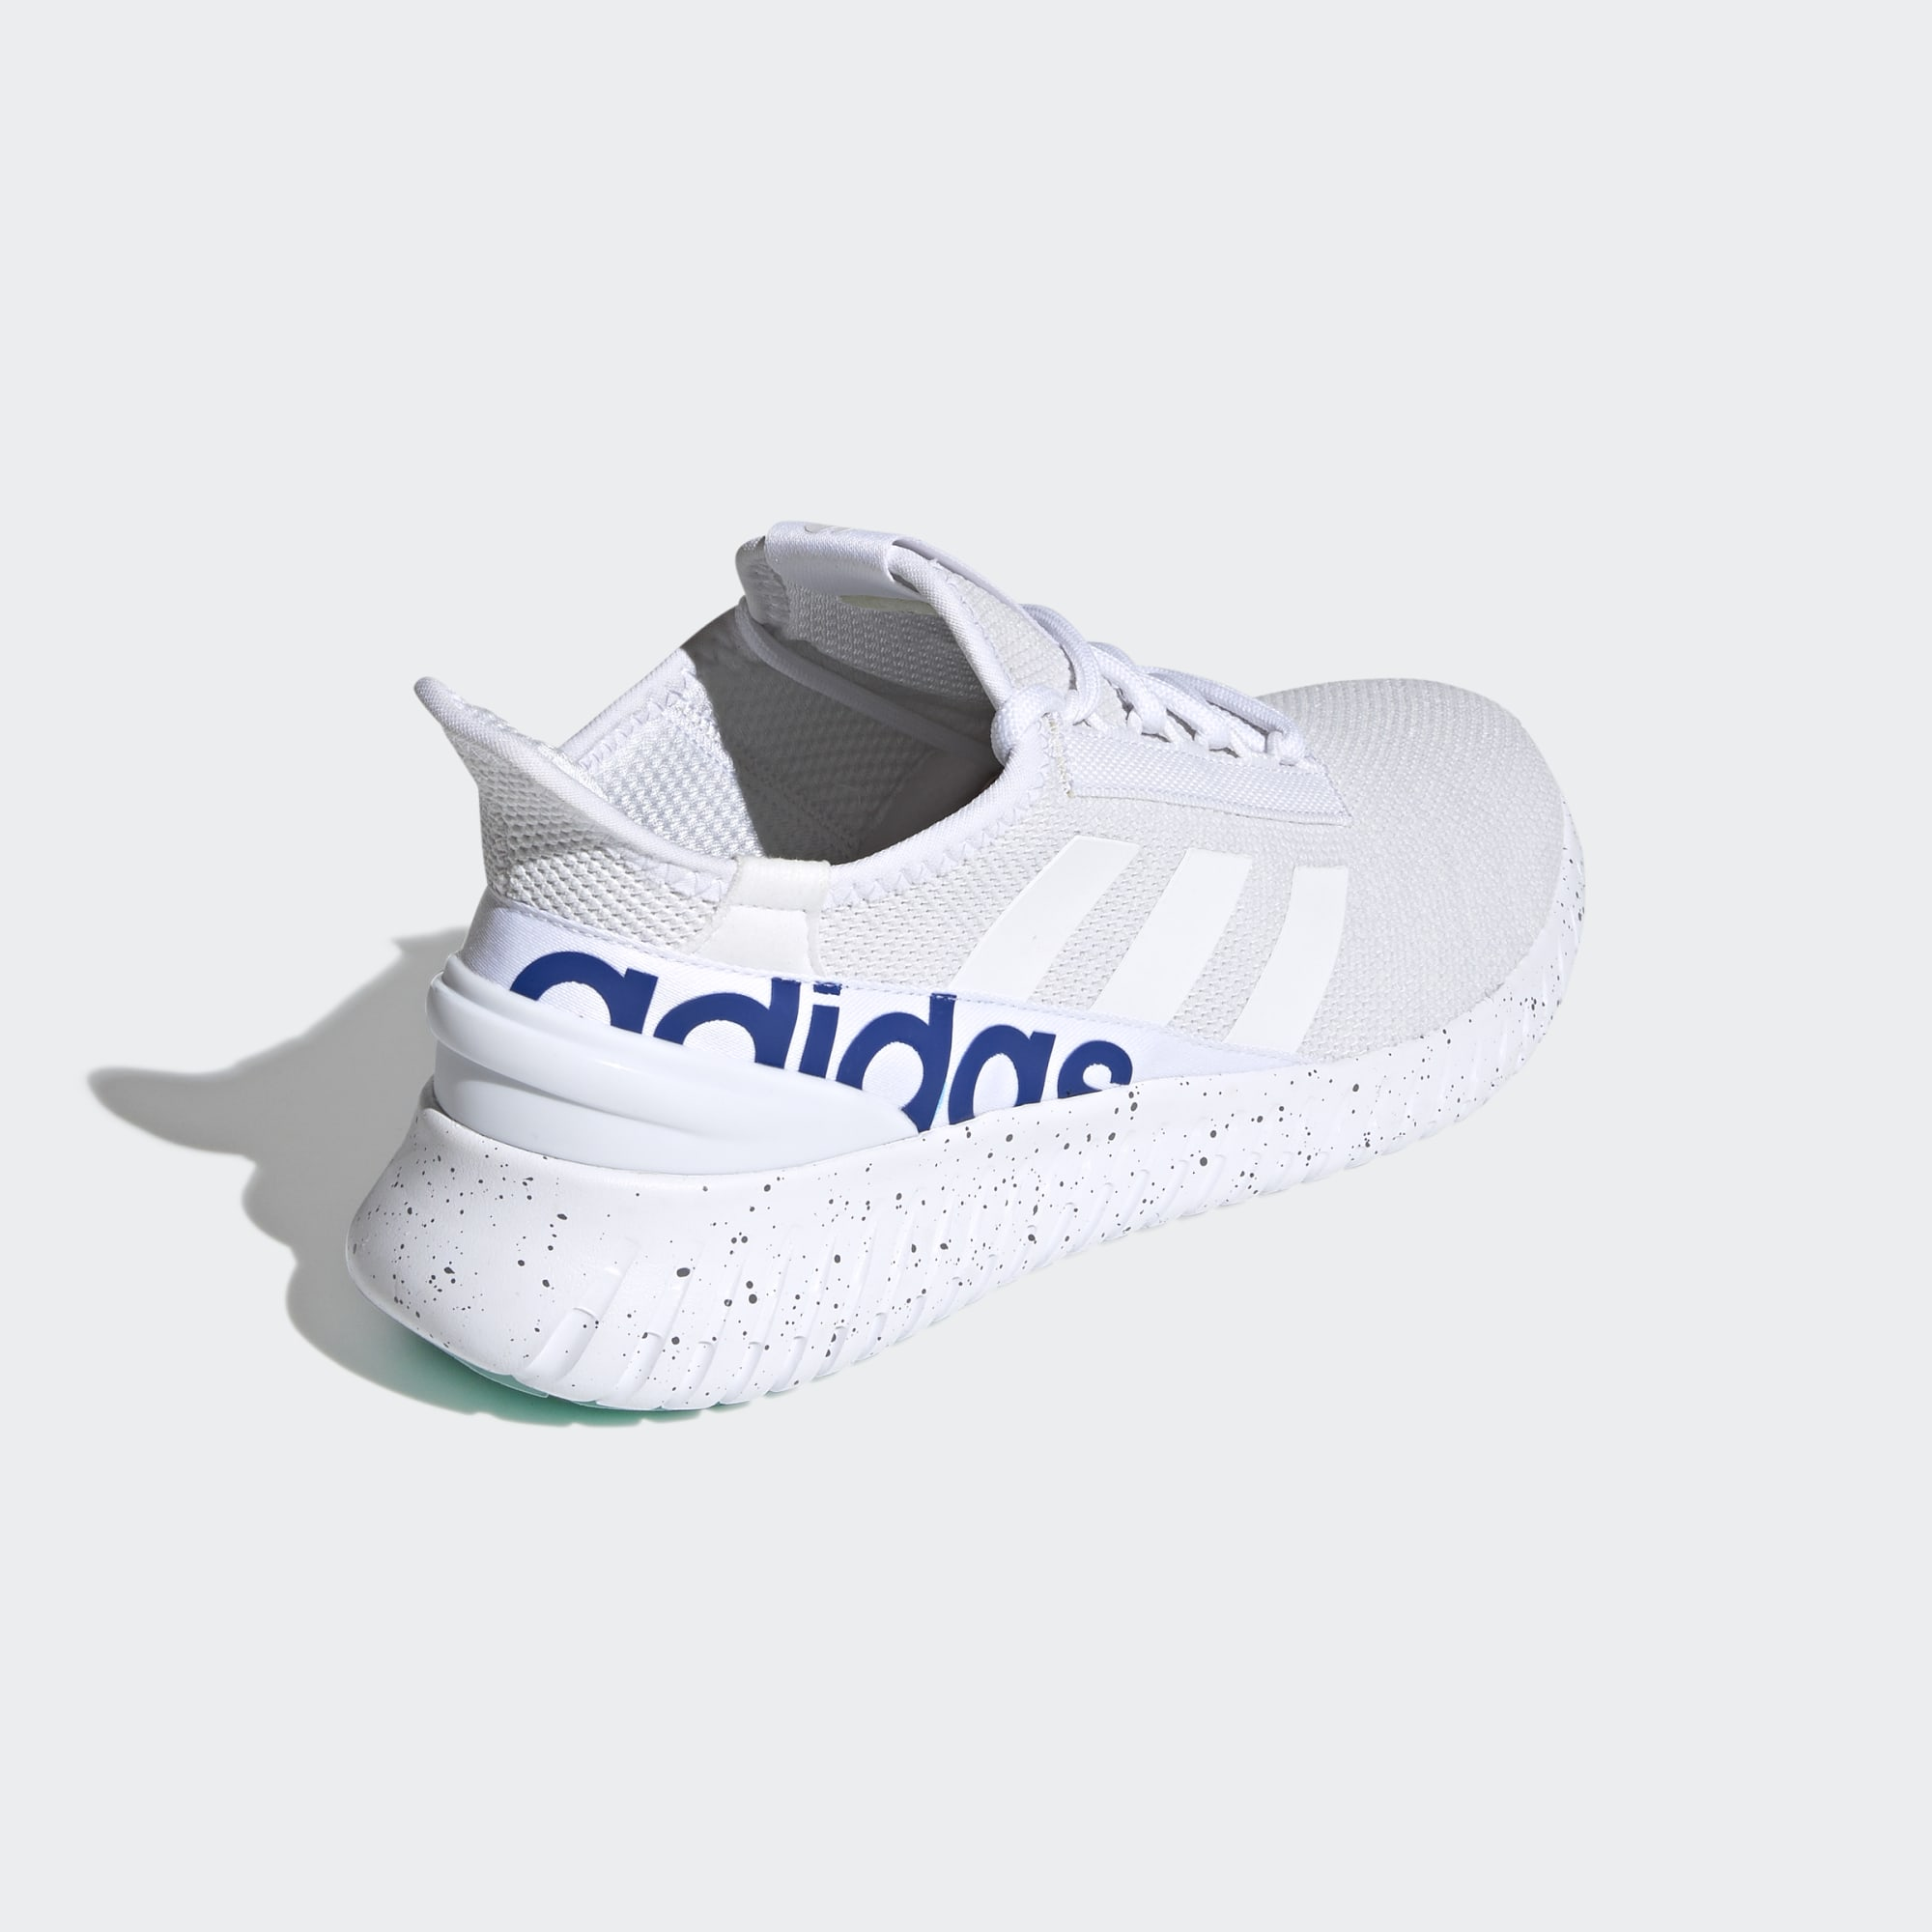 Kaptir_2.0_Shoes_White_H68090_05_standard.jpg